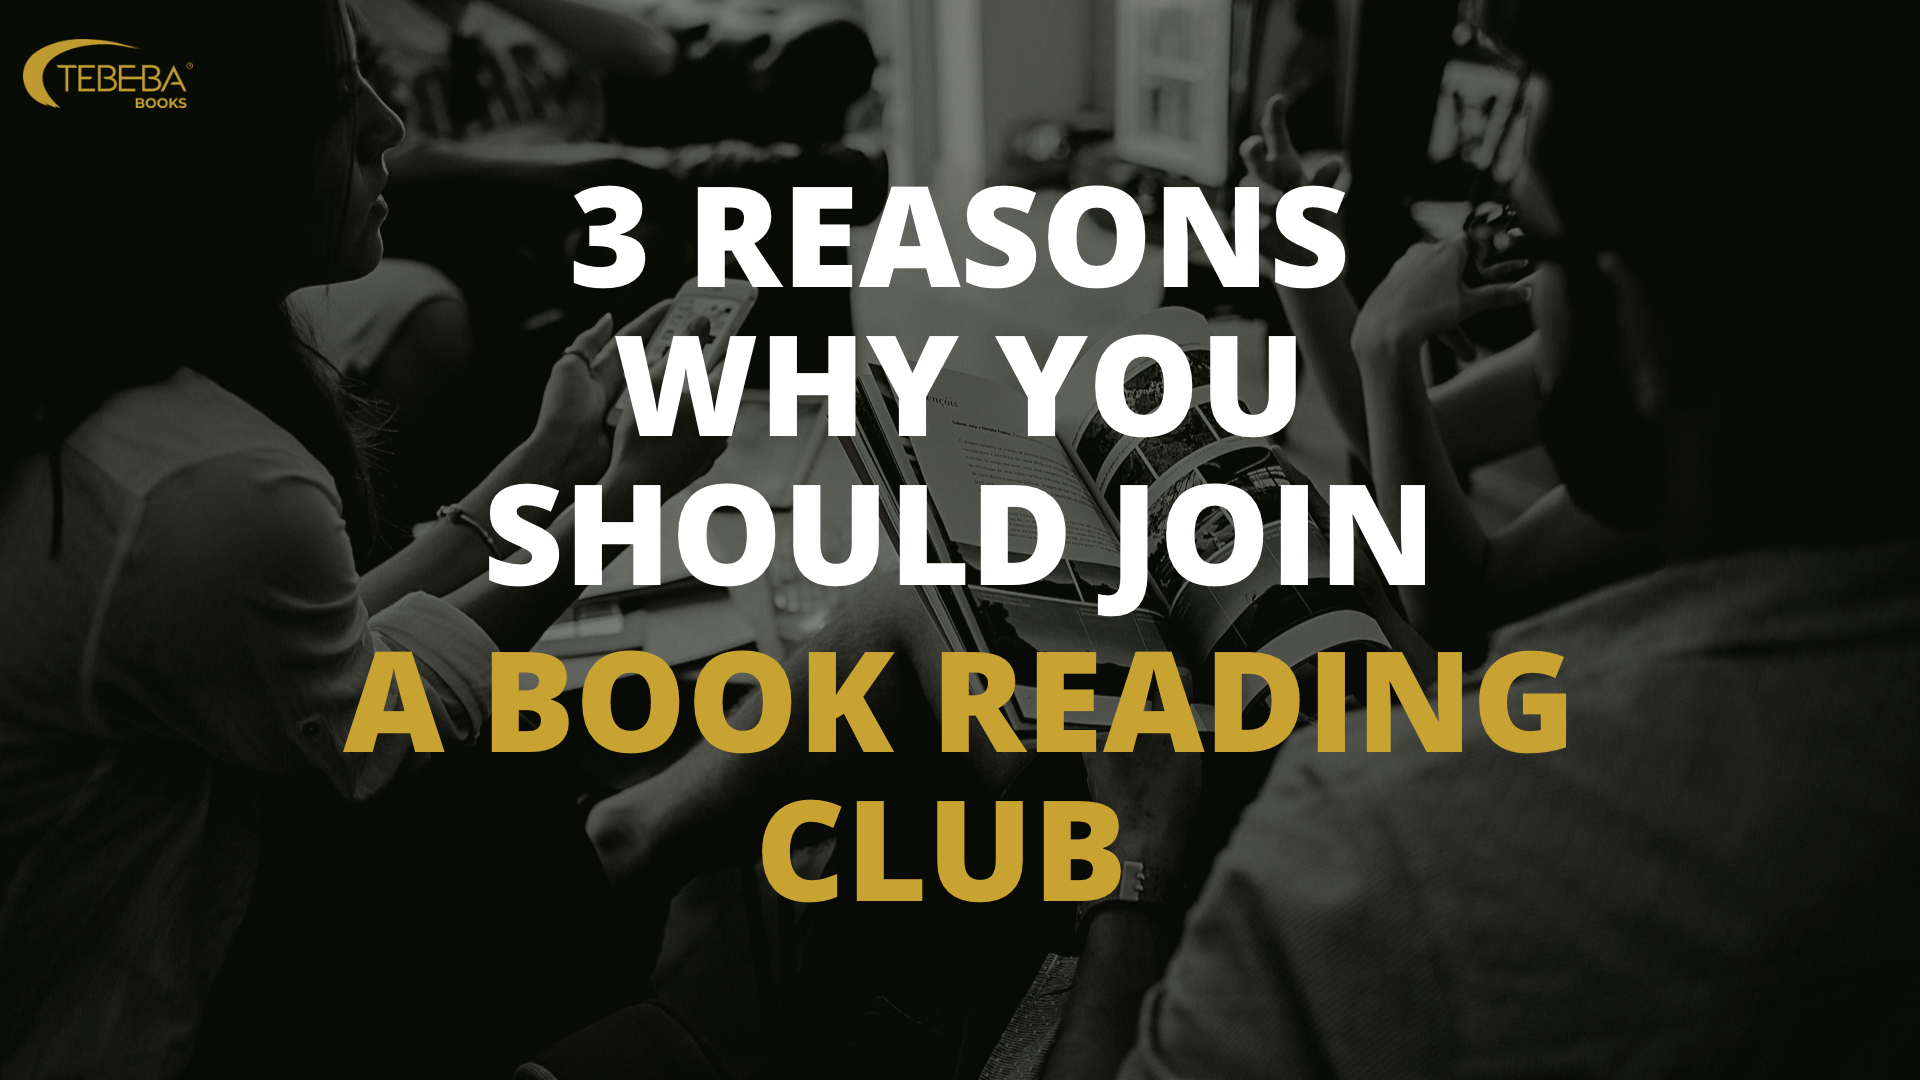 3 Reasons Why You Should Join a Book Reading Club